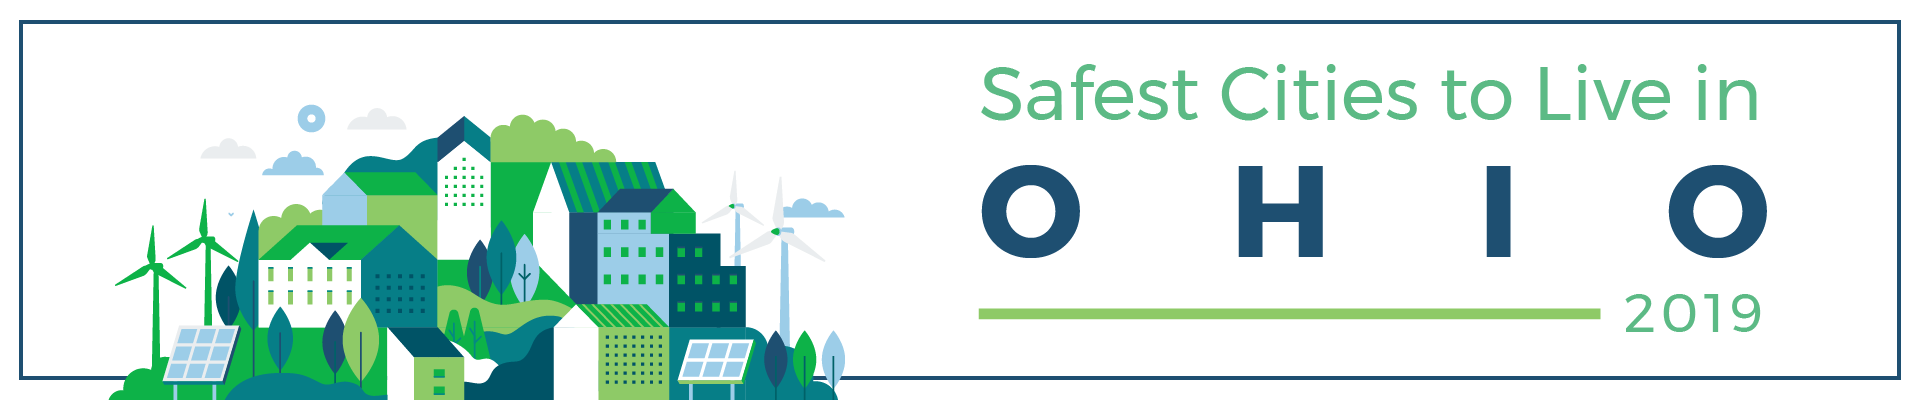 header - safest_cities_ohio_2019